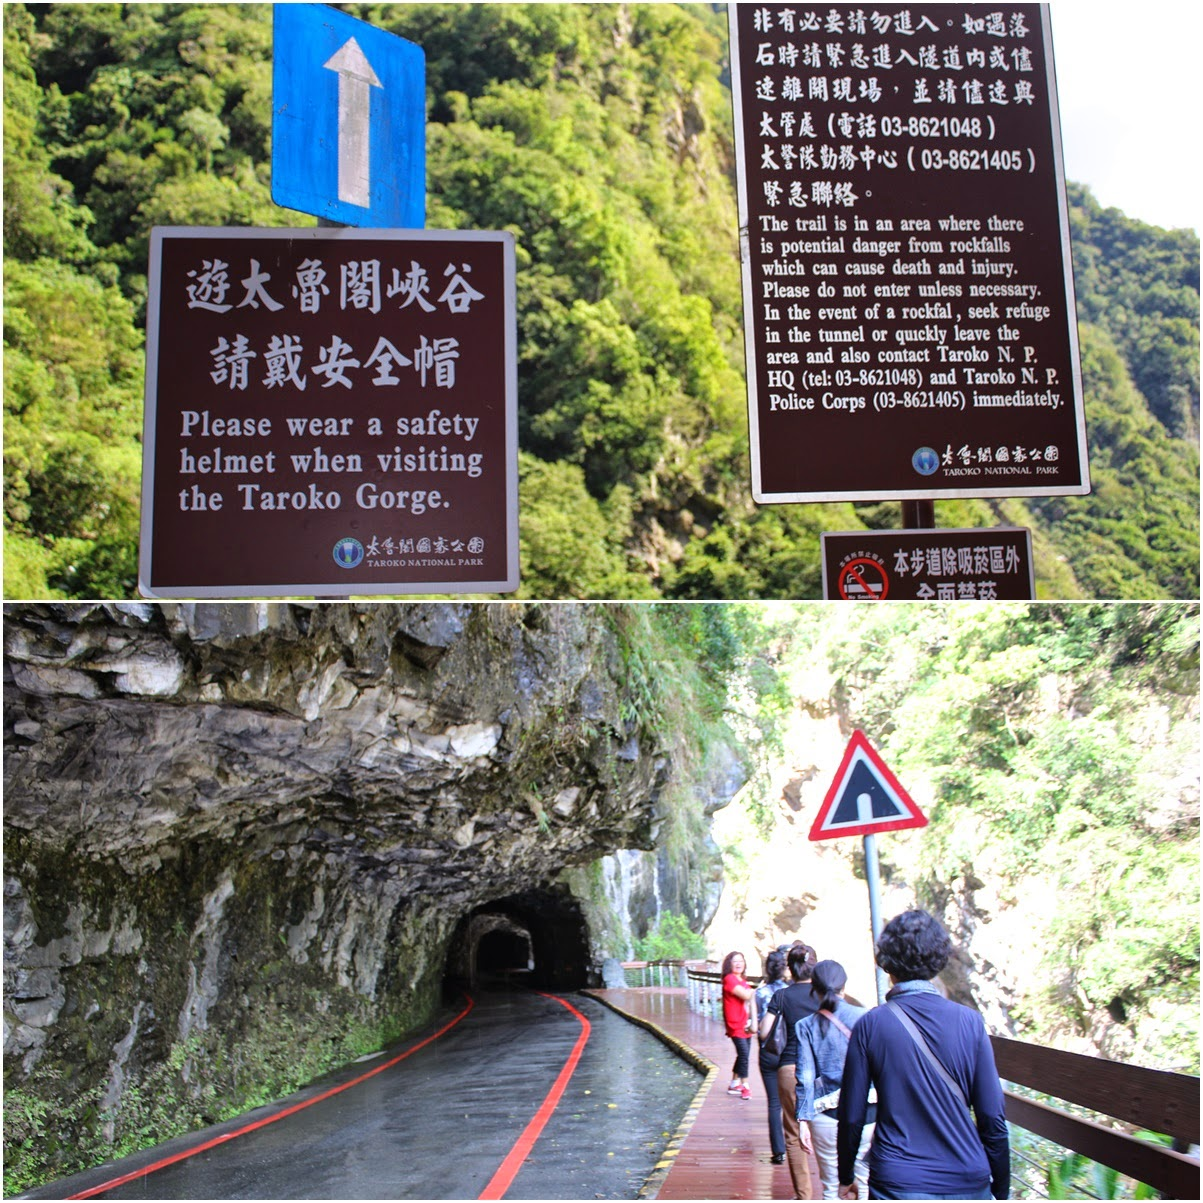 There are warning signs at Swallow Grotto Trail at Taroko Gorge National Park reminding visitors to be constantly wearing helmet due to dangers of rocks fall